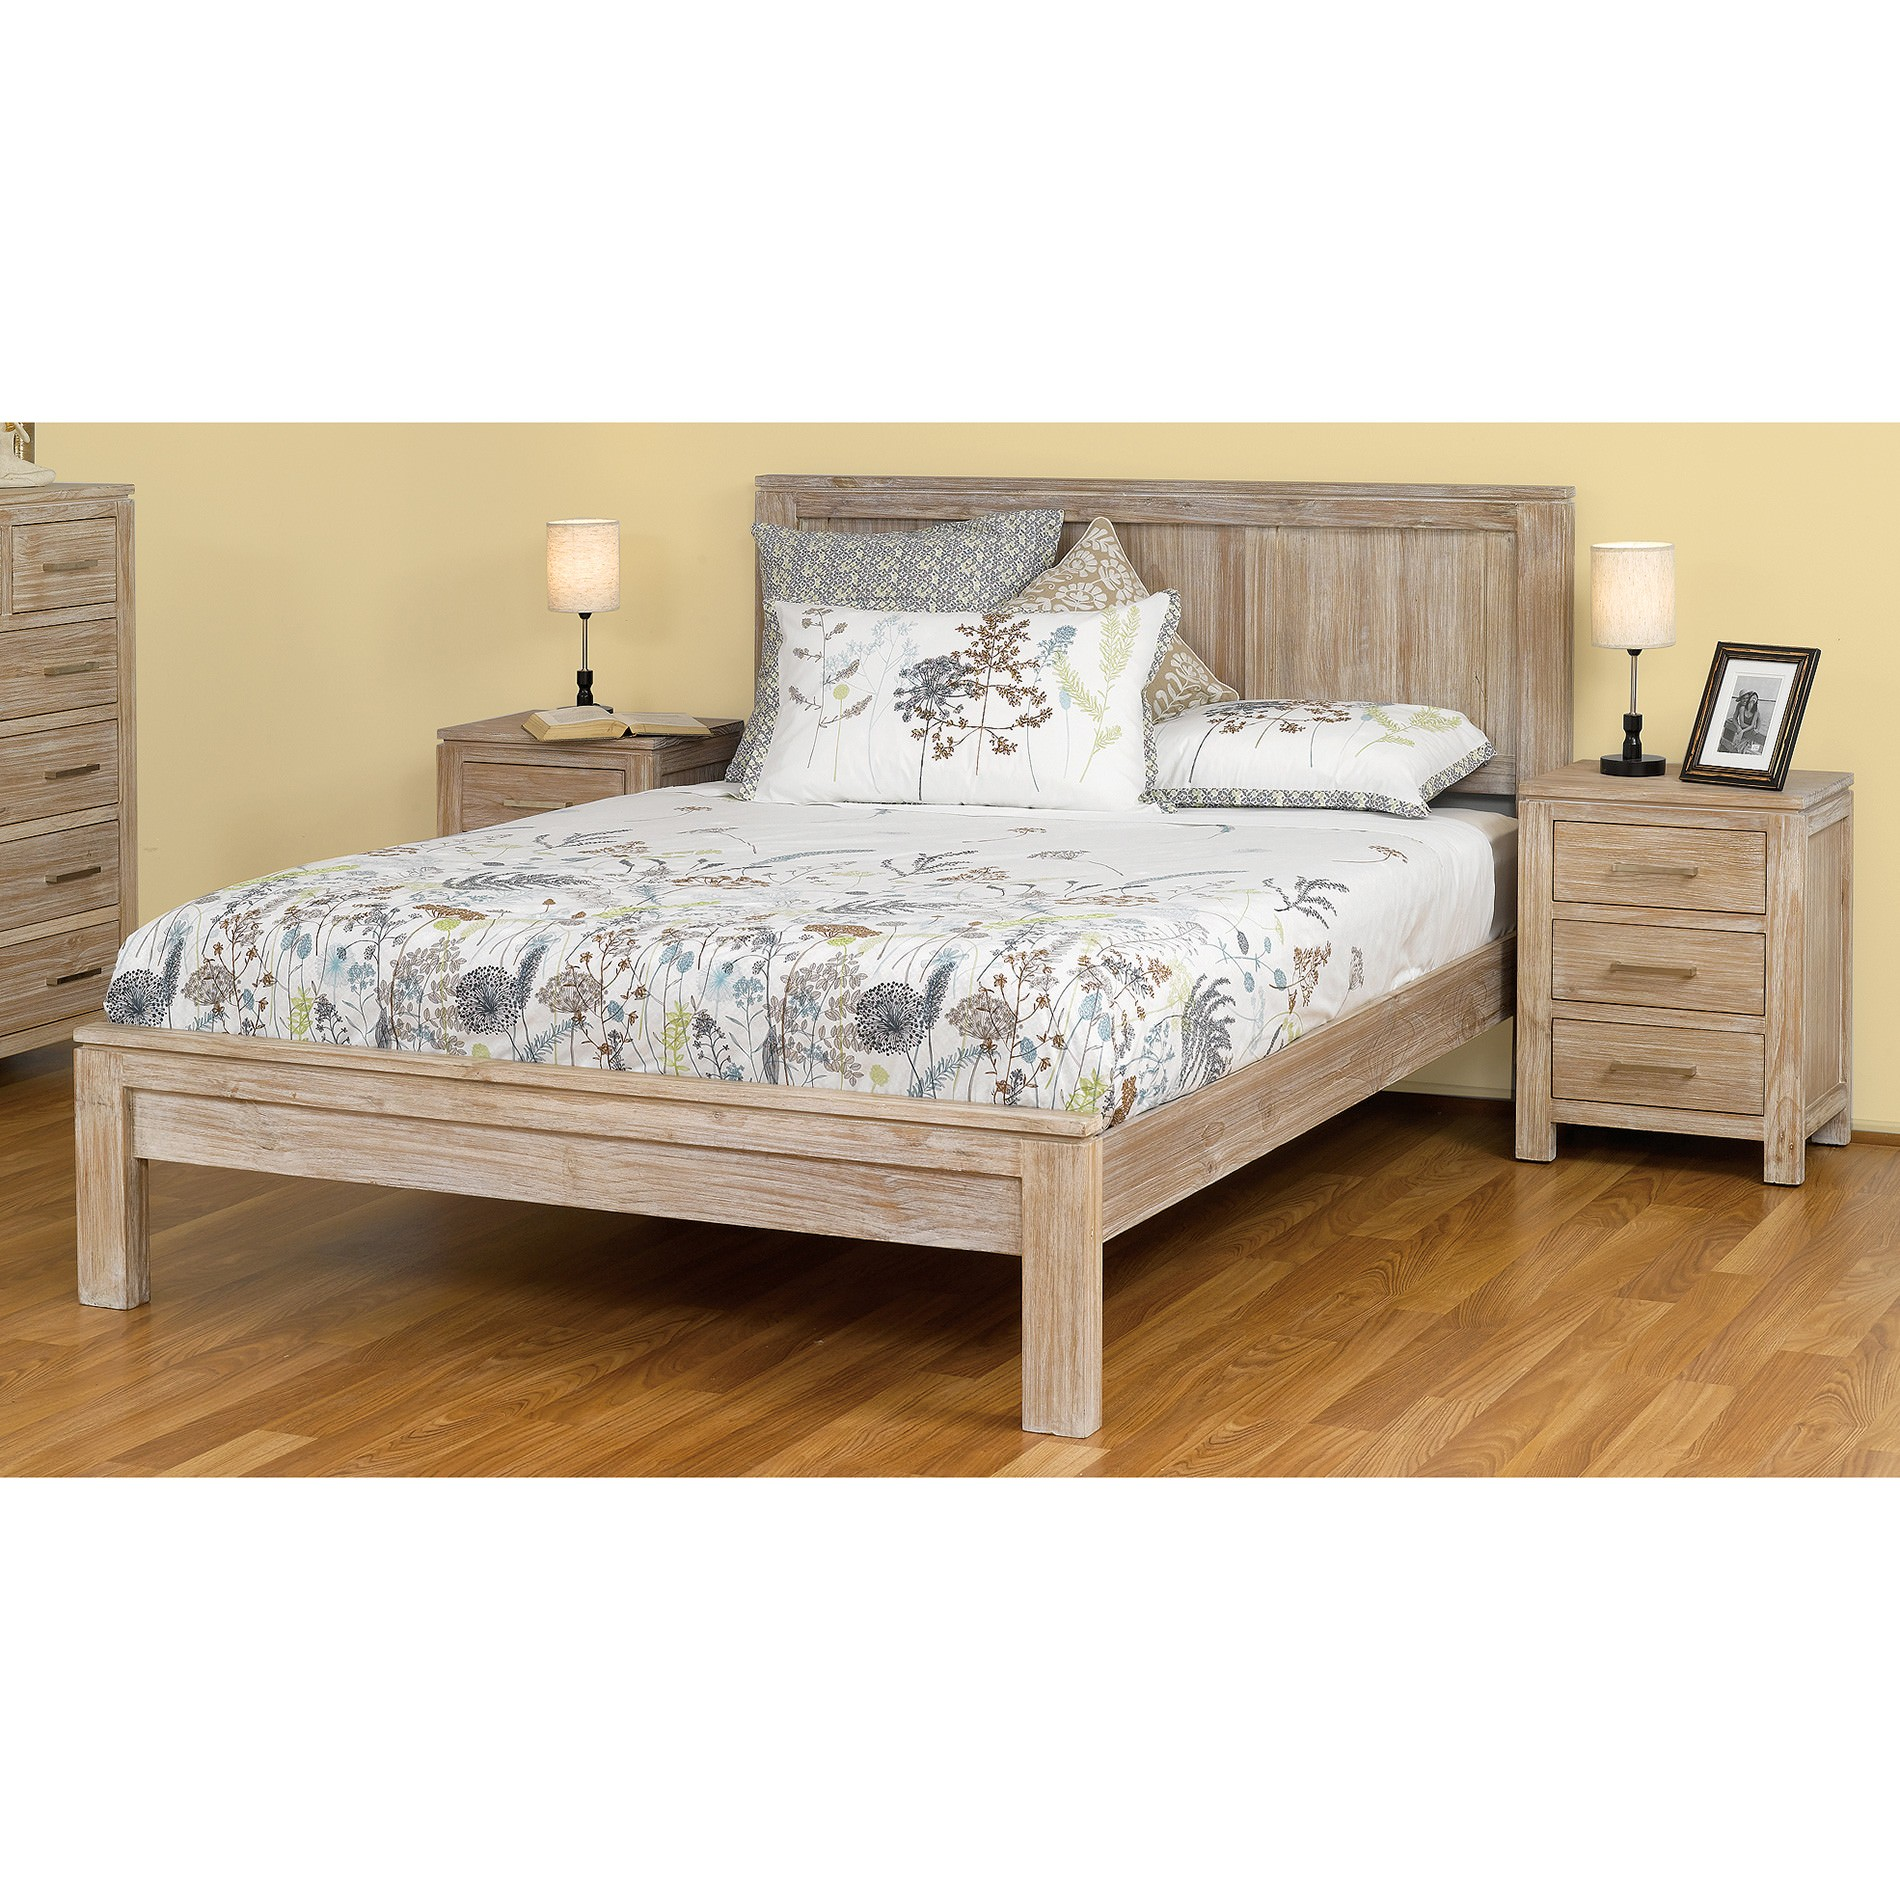 Mosman Pine Timber Bed, King